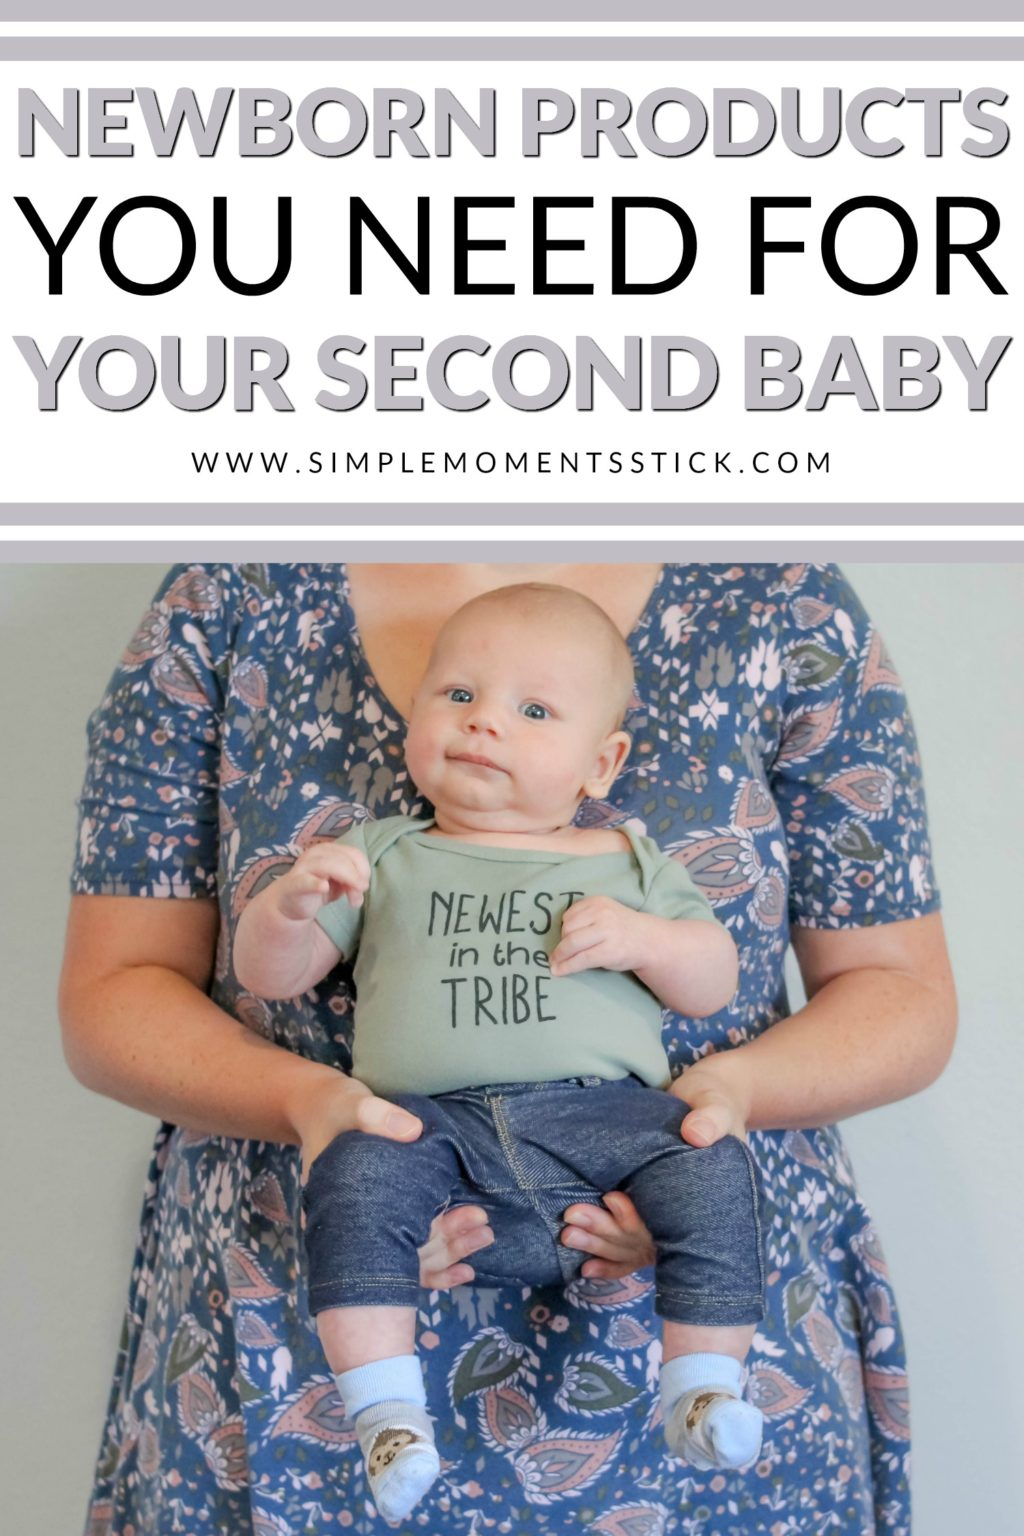 Woman holding baby boy with onesie that says Newest in the Tribe with text saying - Newborn Products You Need For Your Second Baby